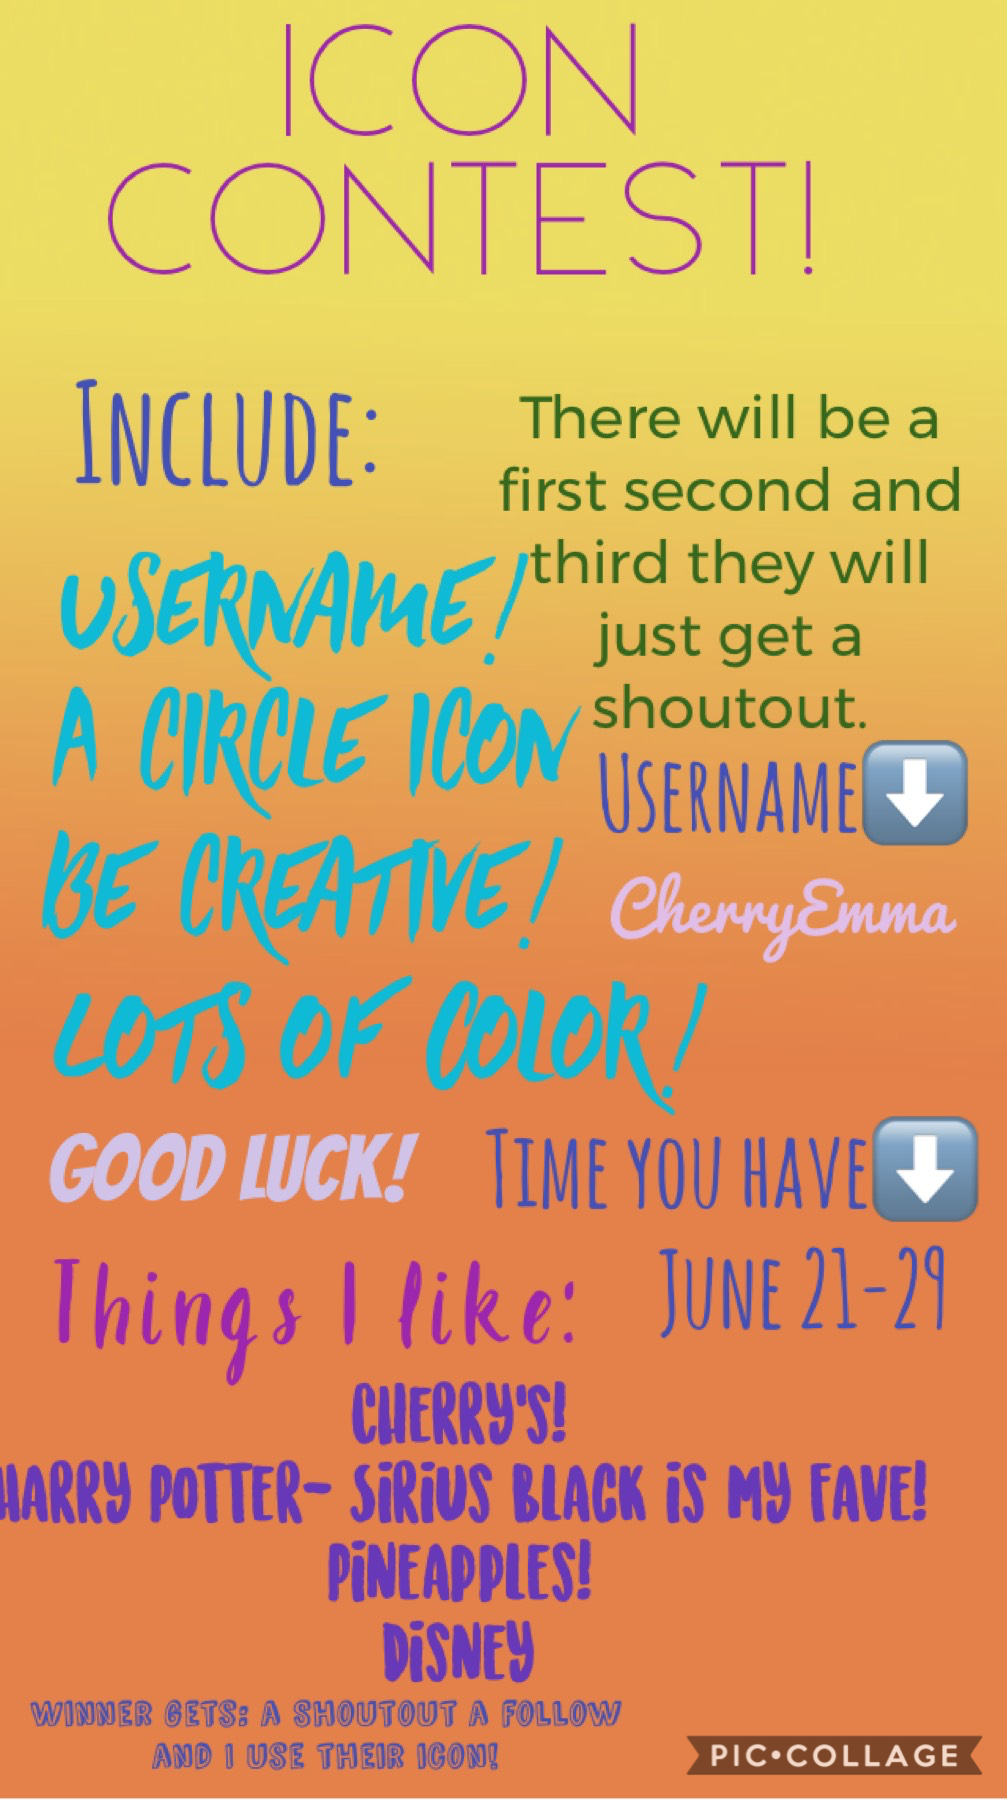 Tap! Join my icon contest! Have fun and good luck! Winner gets prize! (Small print at the bottom)-CherryEmma